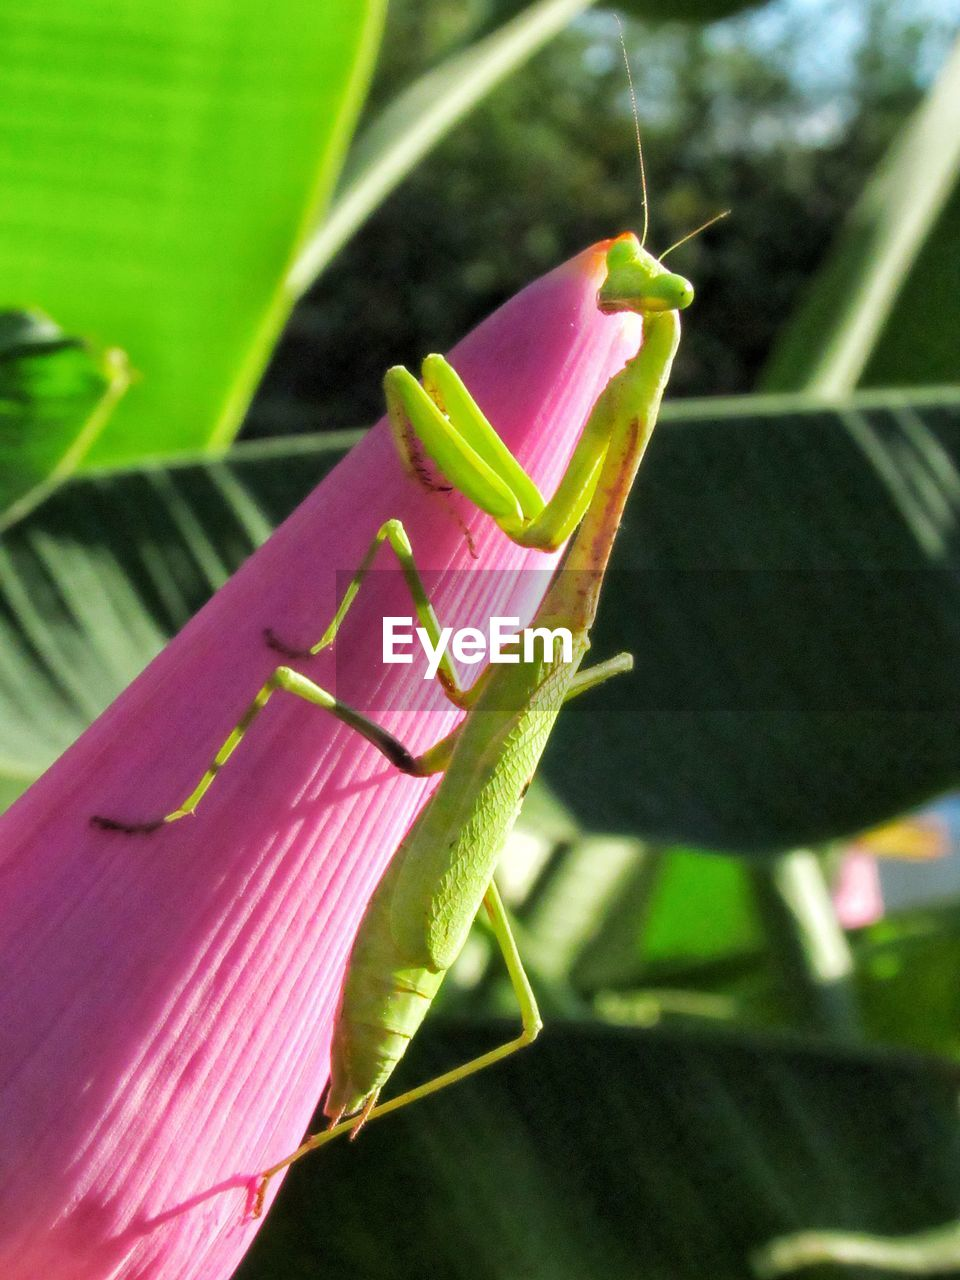 plant, plant part, leaf, pink color, close-up, focus on foreground, insect, invertebrate, no people, green color, nature, animal themes, freshness, growth, animals in the wild, day, animal, animal wildlife, one animal, beauty in nature, outdoors, flower